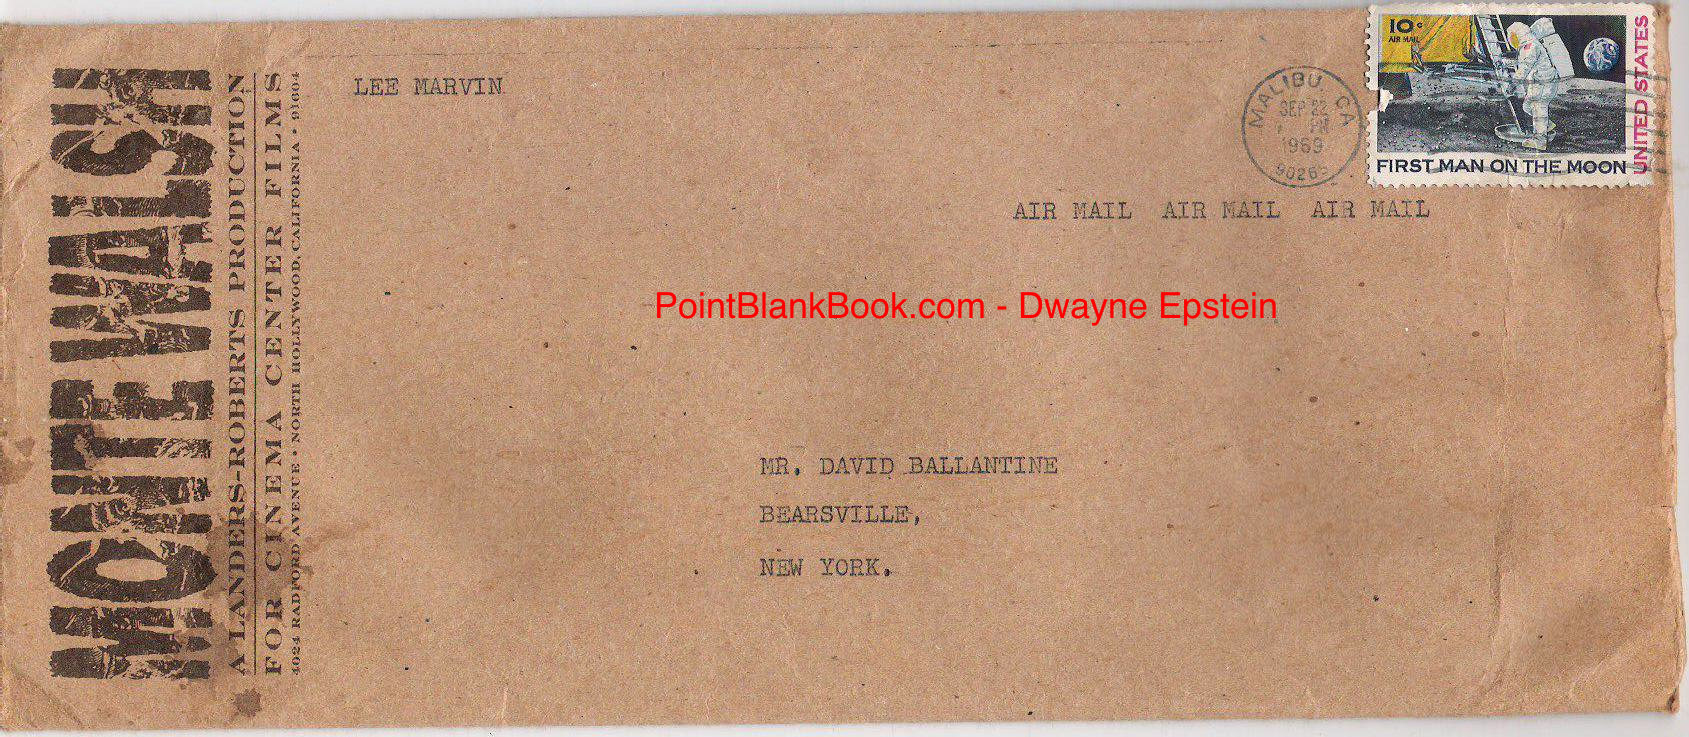 ballantine envelope